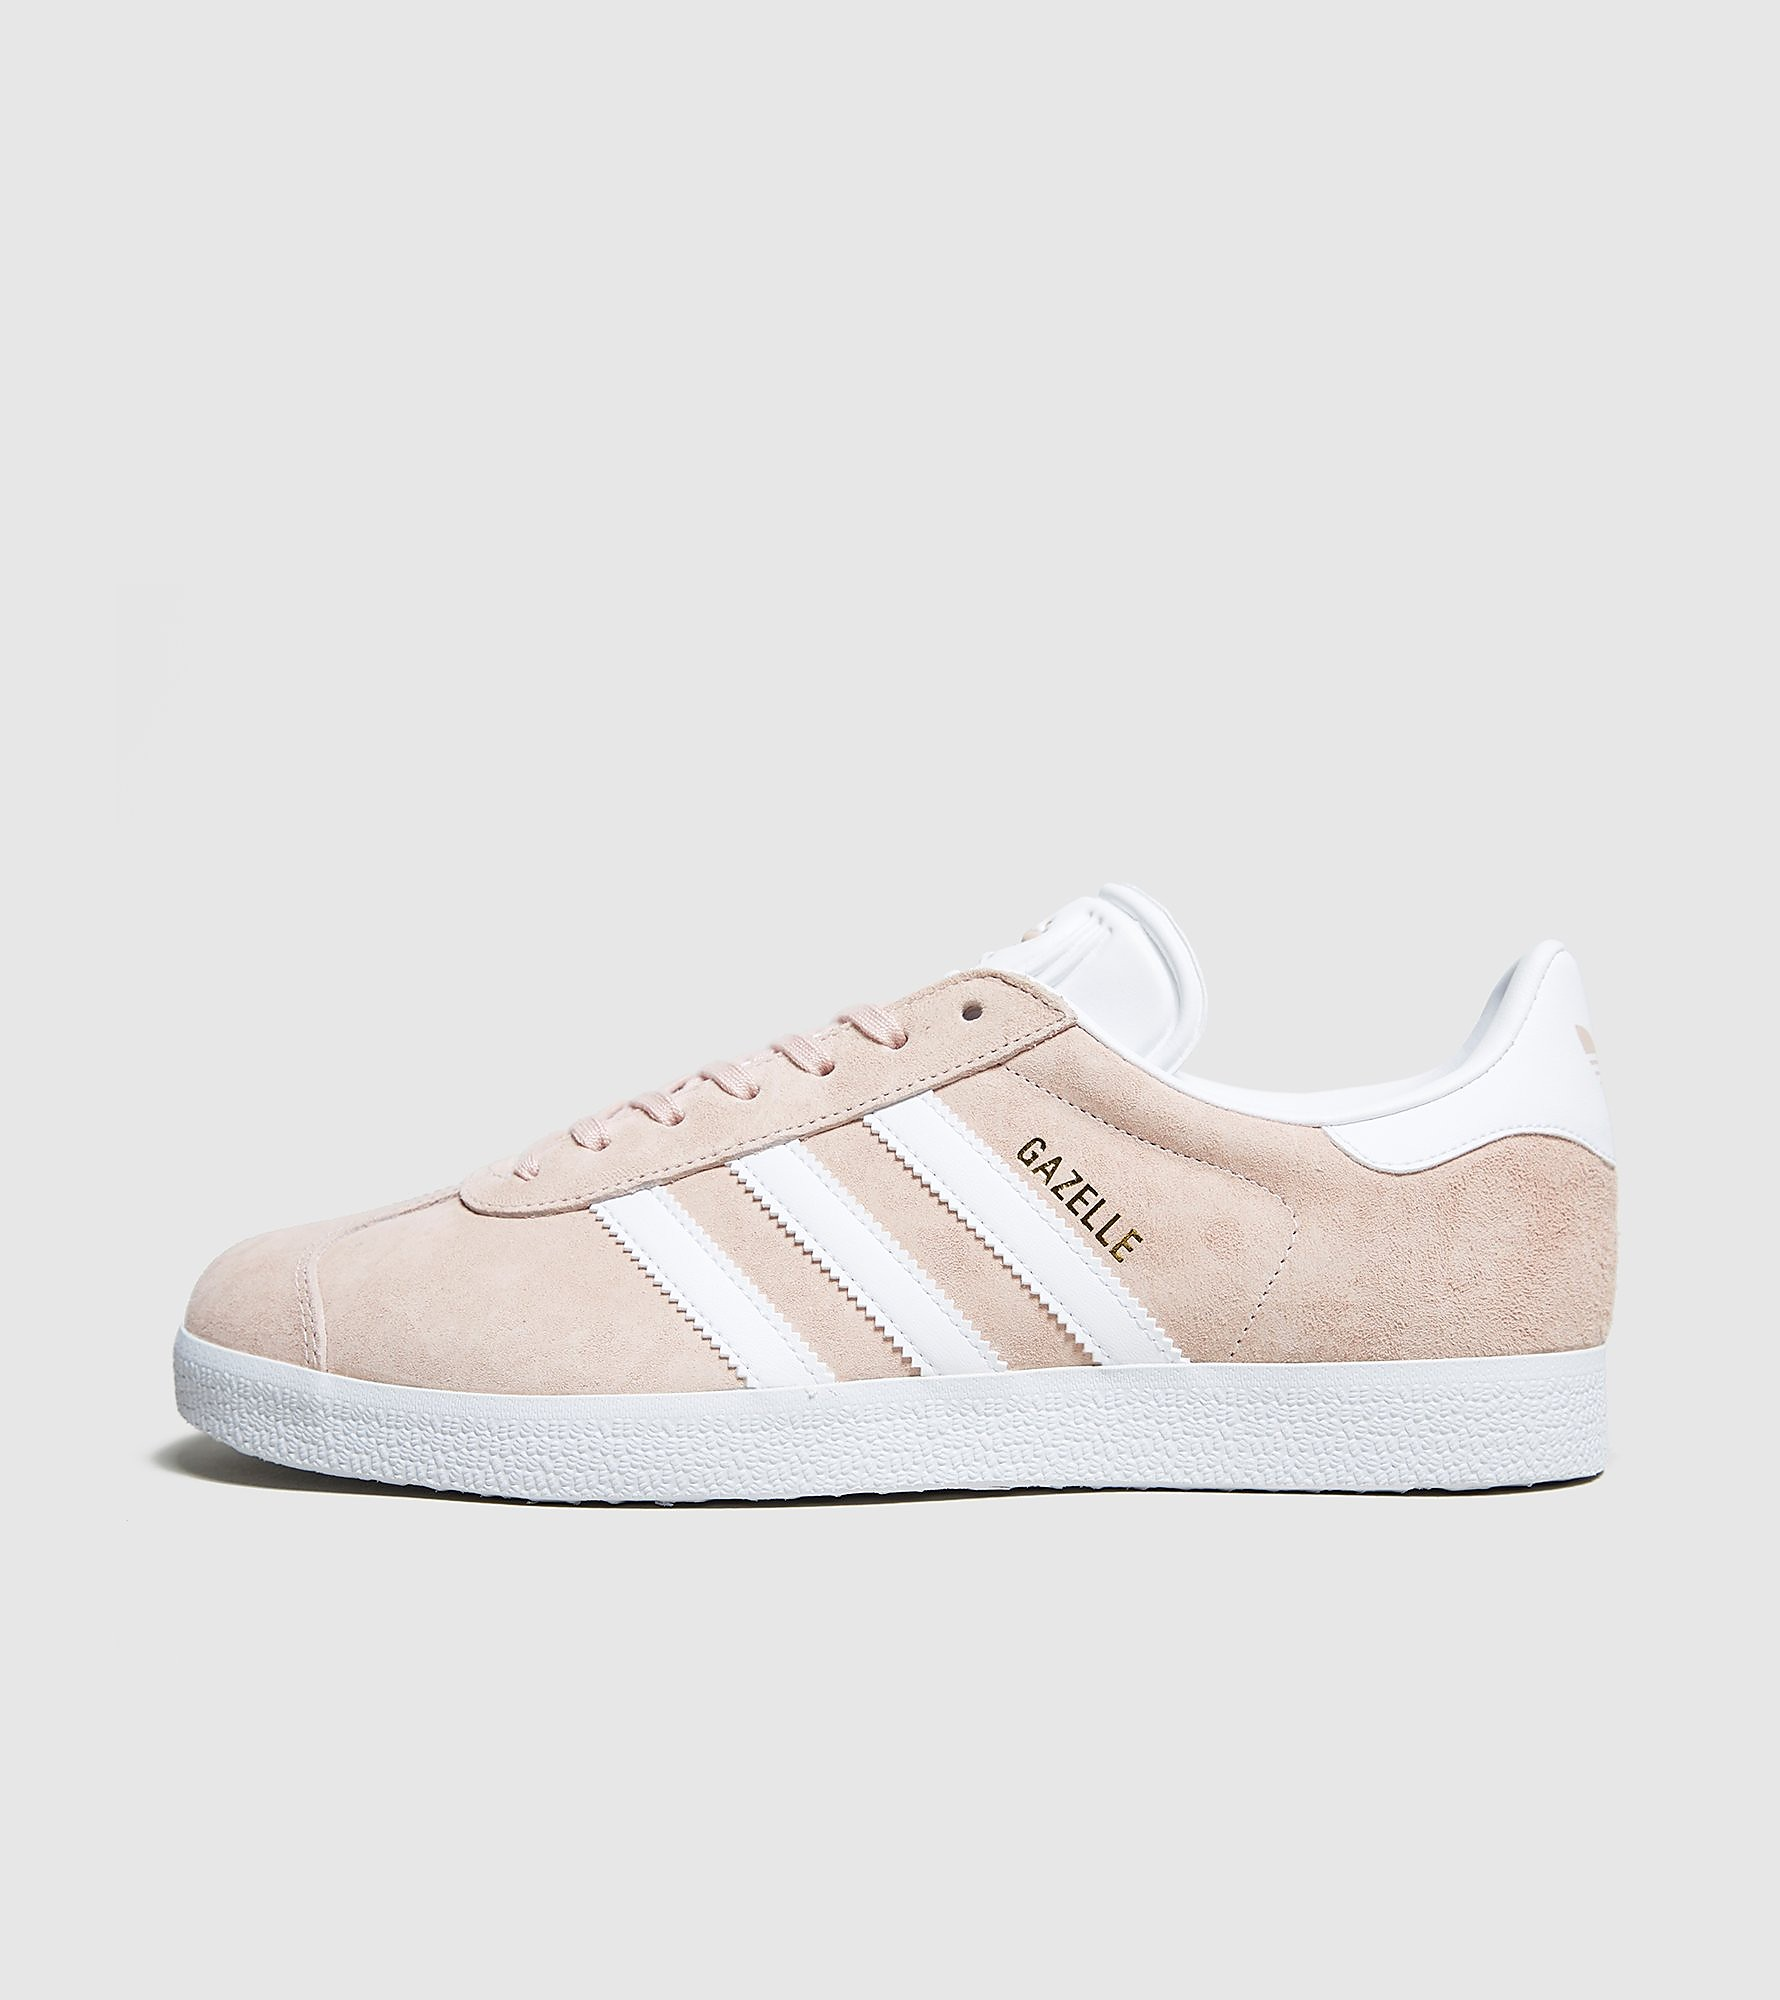 adidas Originals Gazelle, rosa/blanco